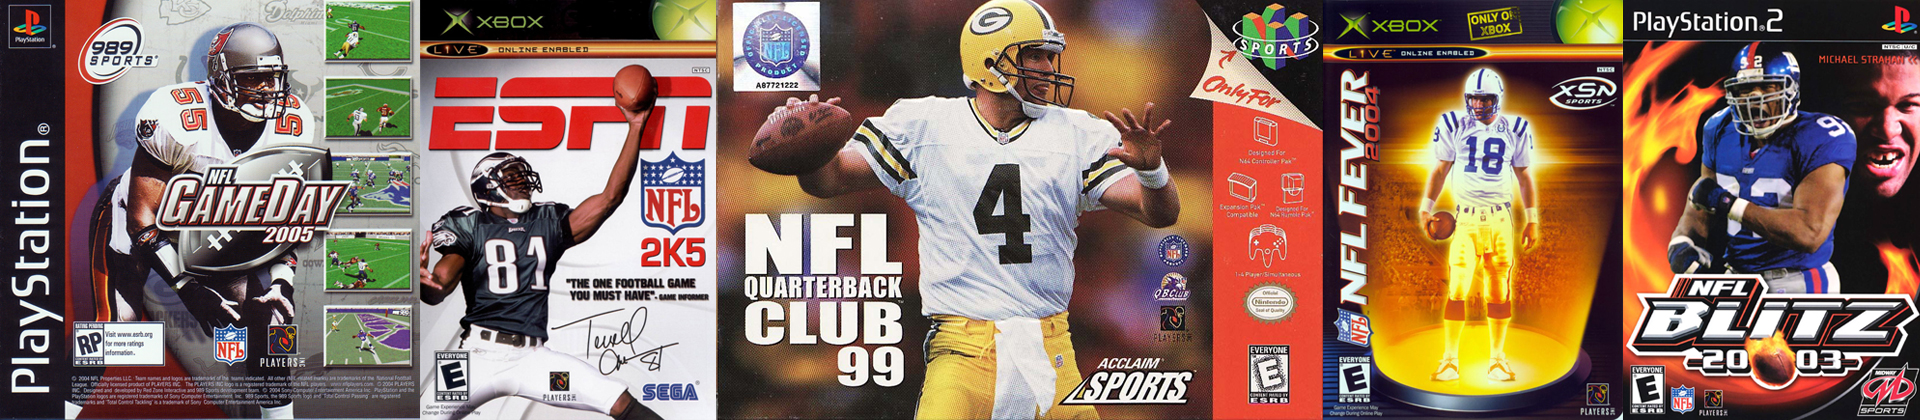 NFL Football Video Game Series Over The Years